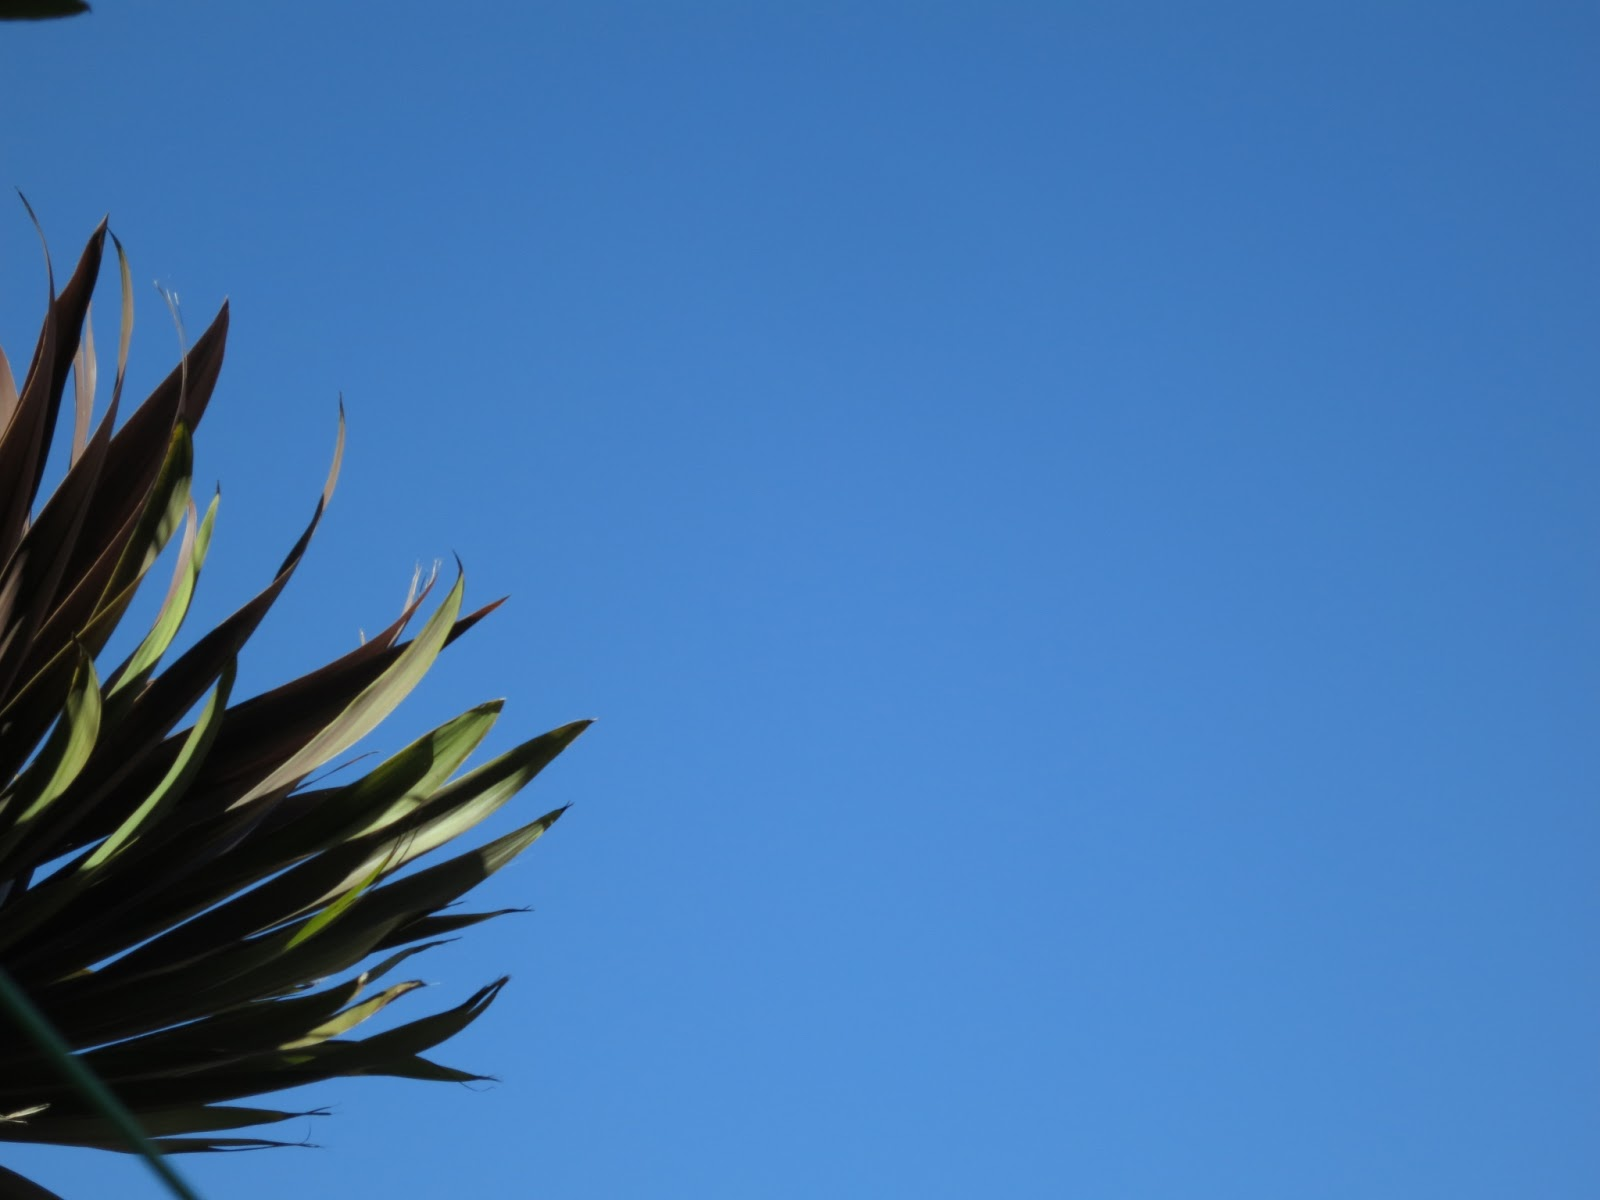 Brown cordyline tree. Blue sky. Windy day.